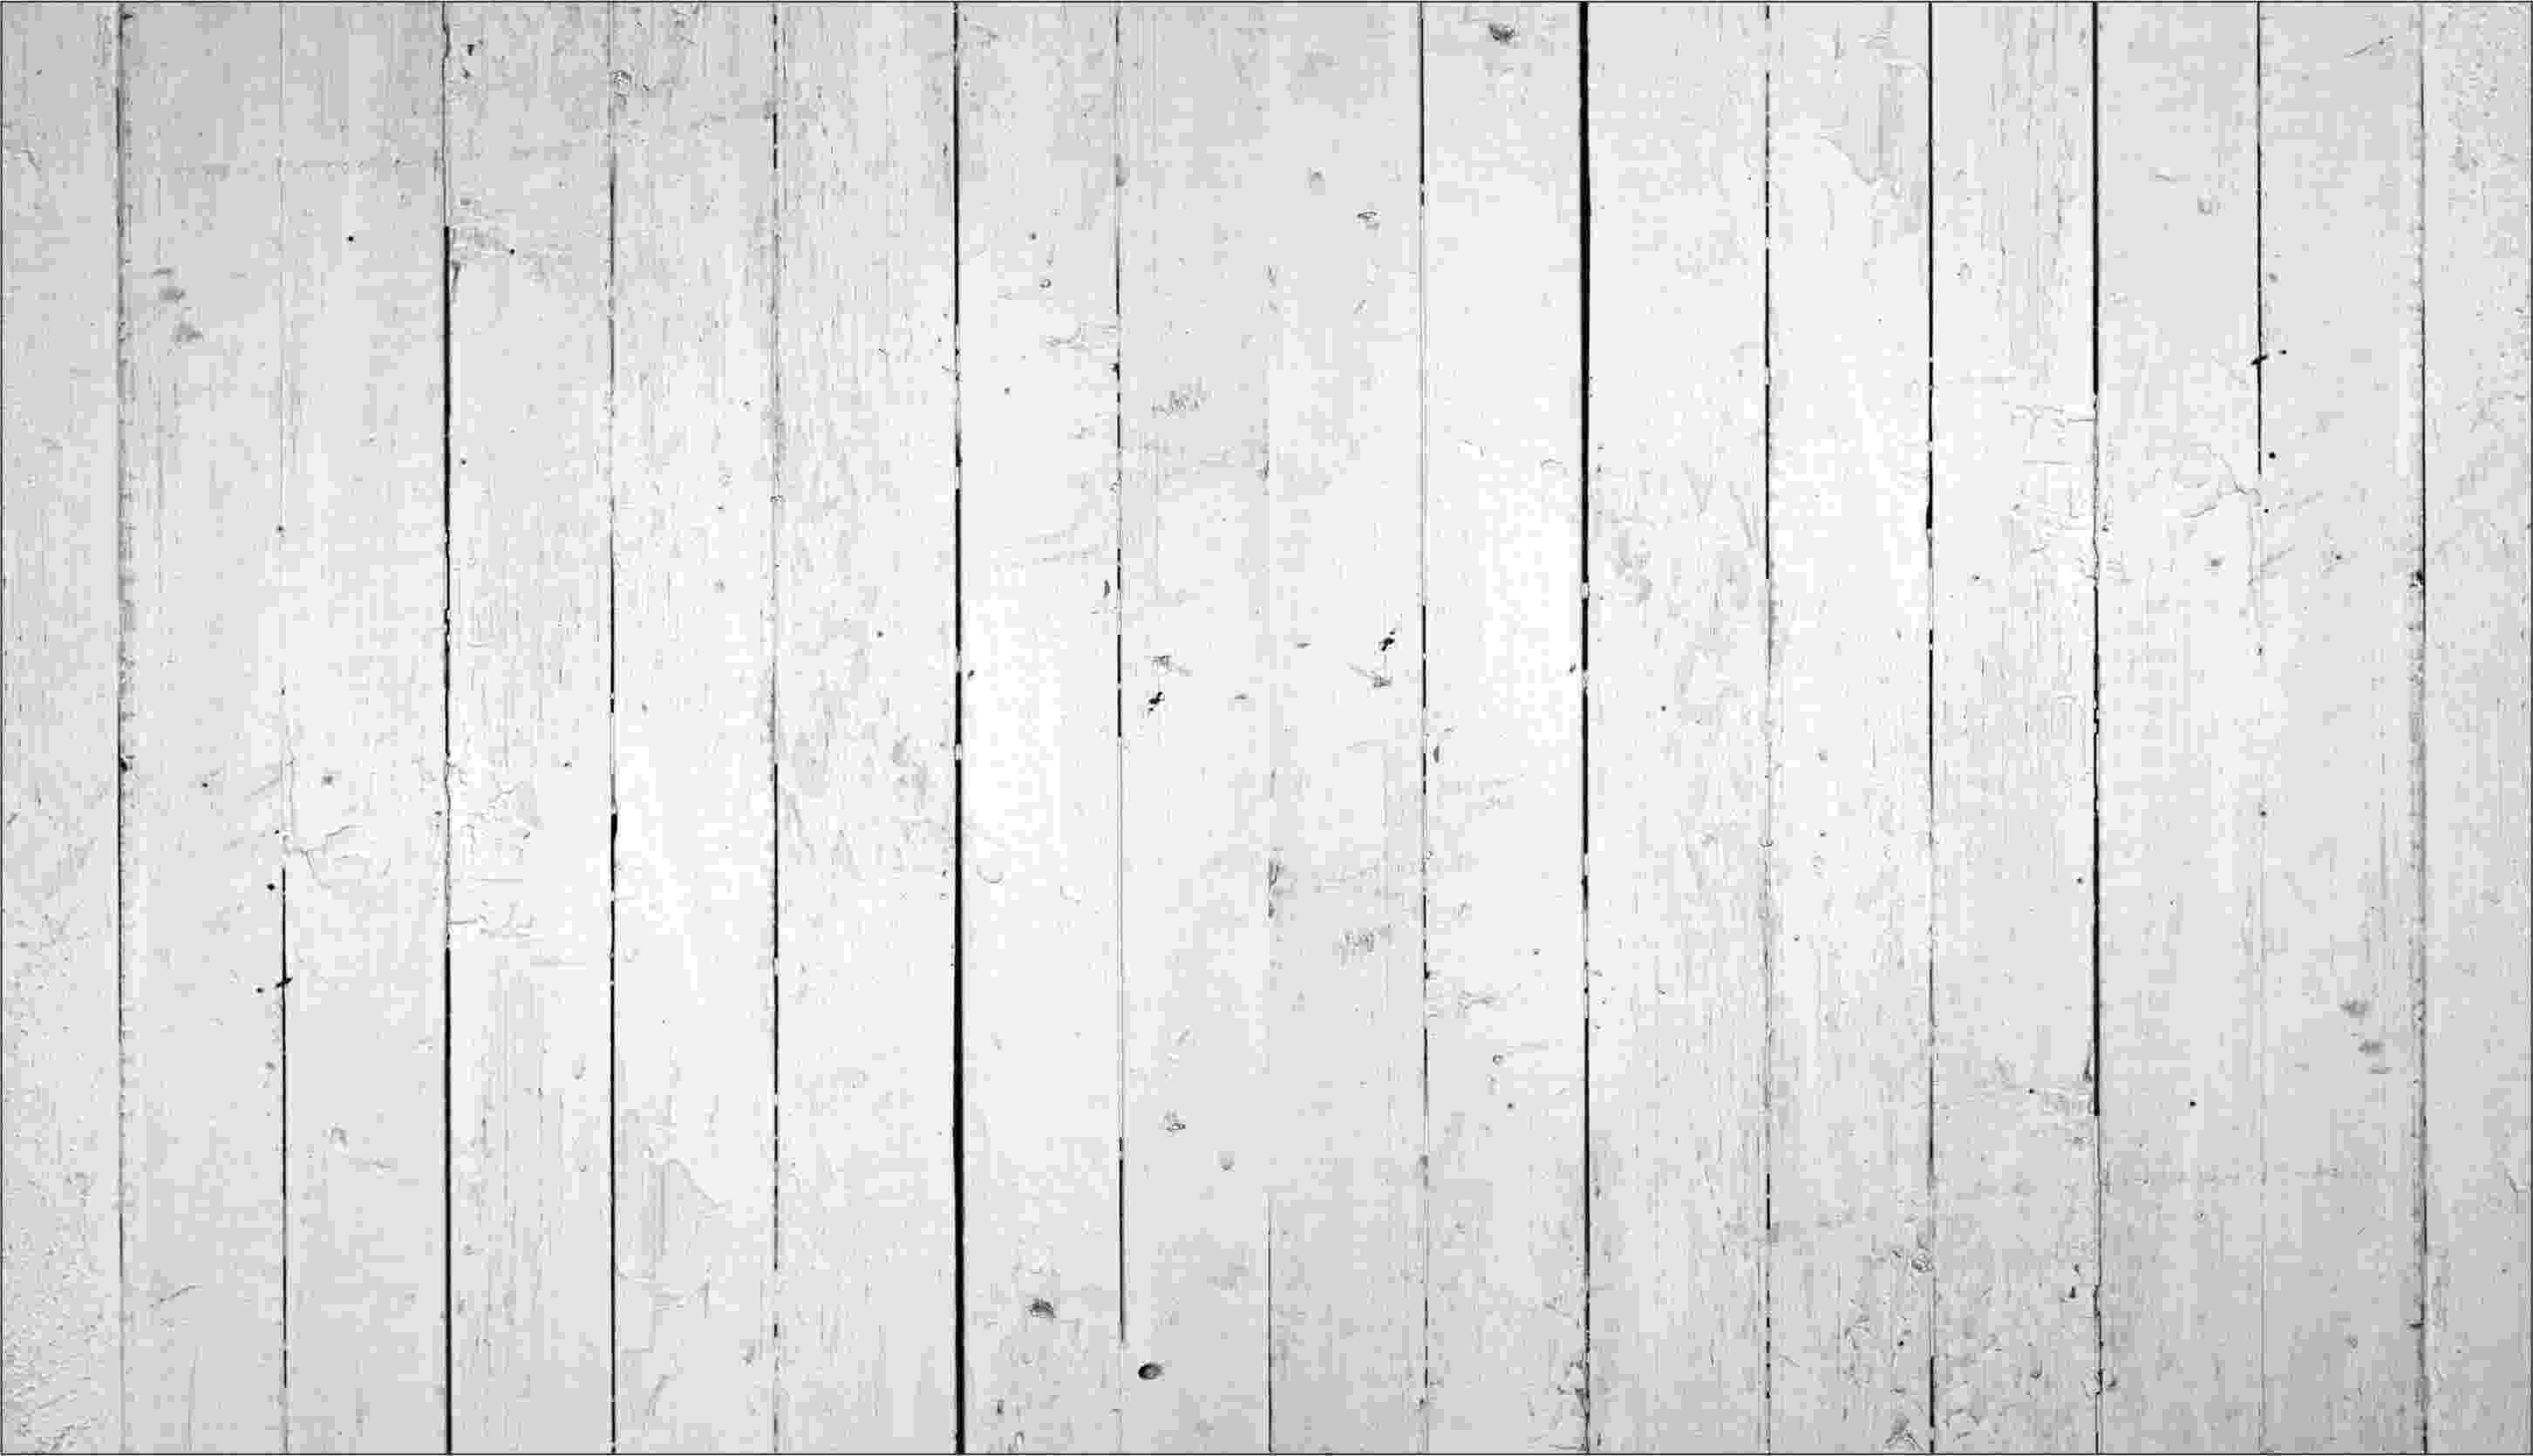 color ideas painting wood paneling white wood floor background design inspiration 27527 floor painting wood paneling ideas color